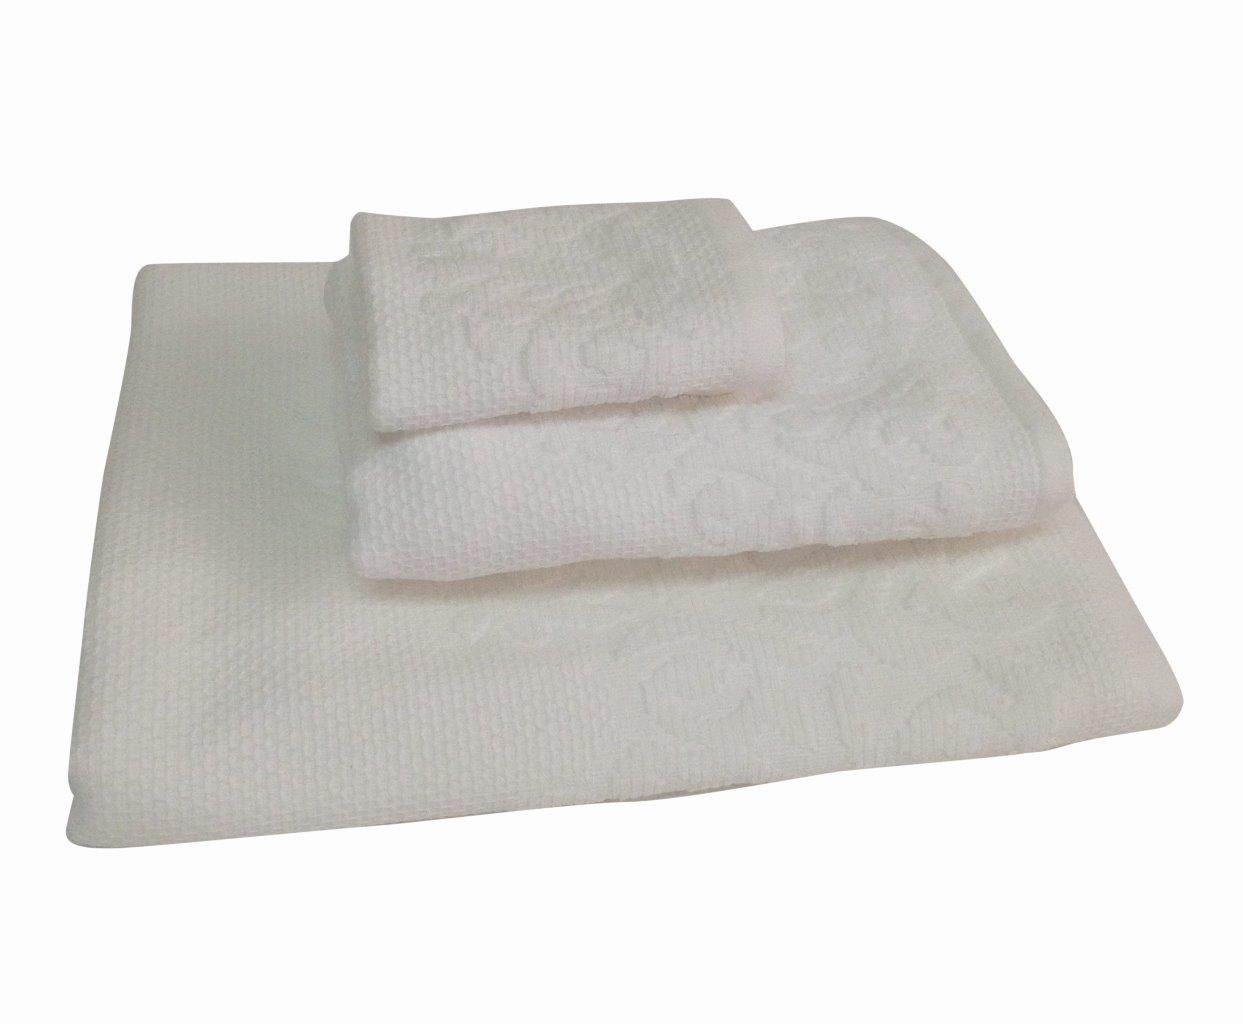 Florence Bath Range 100% Cotton Face Cloth, Finger Towel, Guest Towel, Bath Towel, Bath Sheet